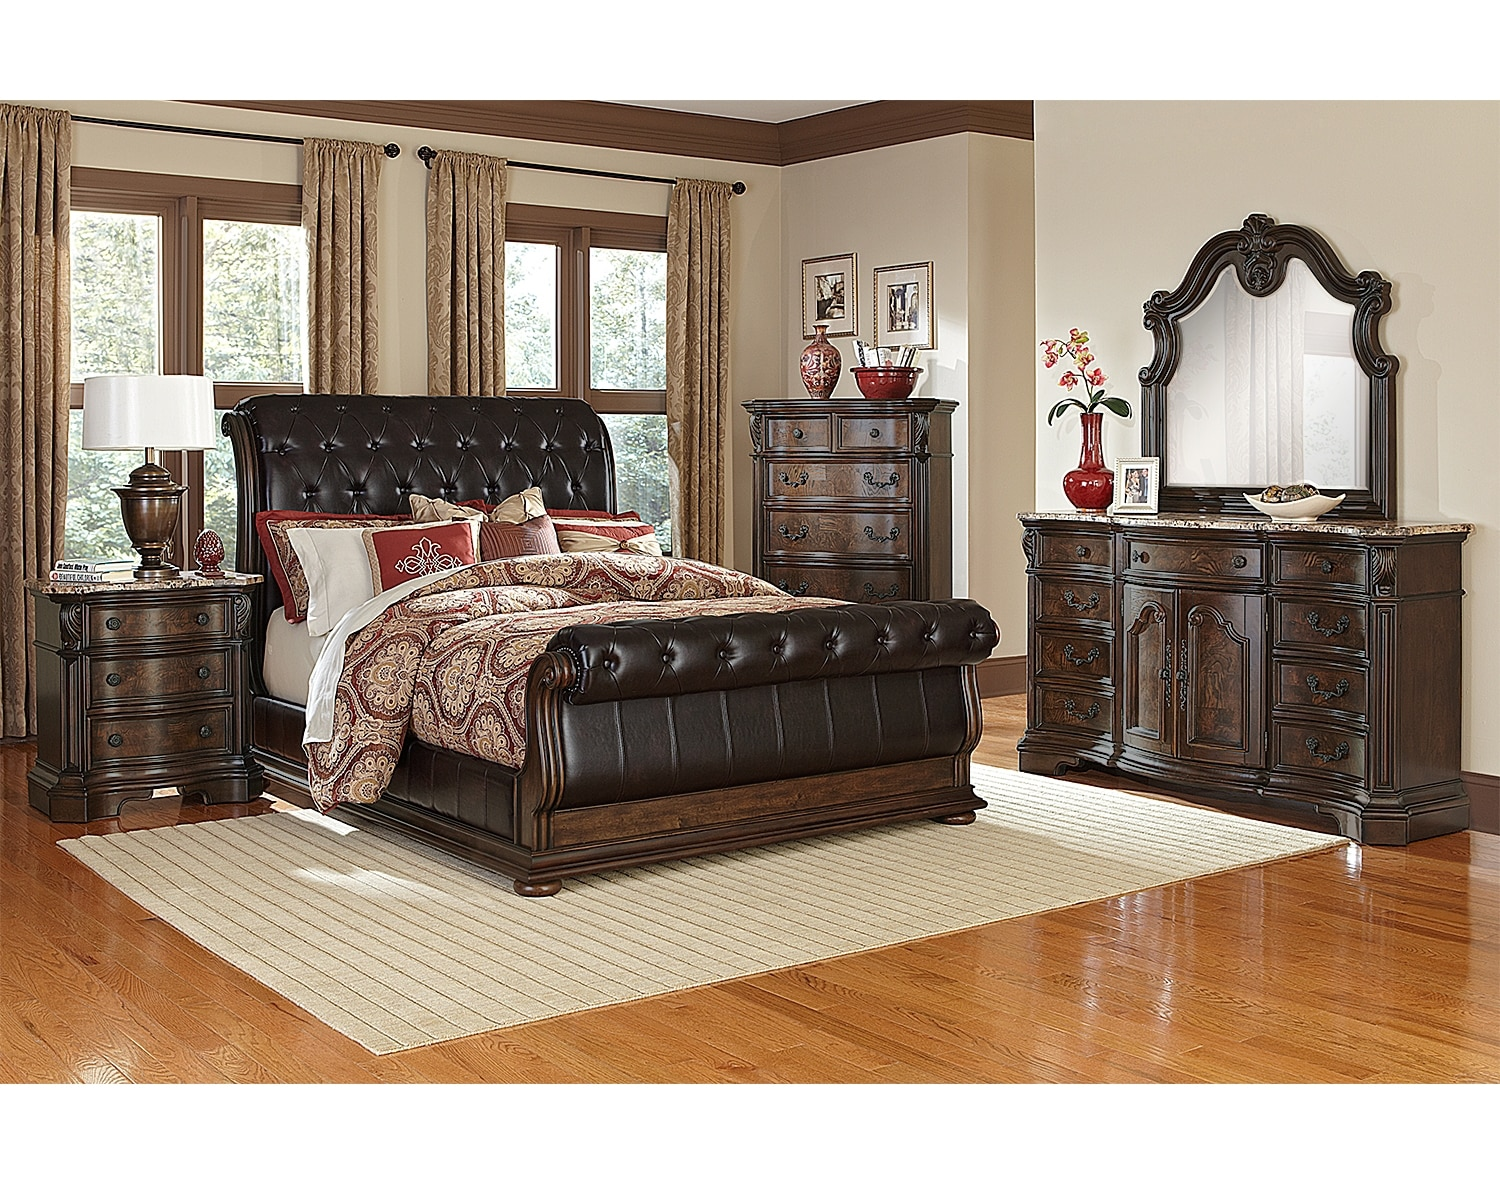 The Monticello Sleigh Bedroom Collection